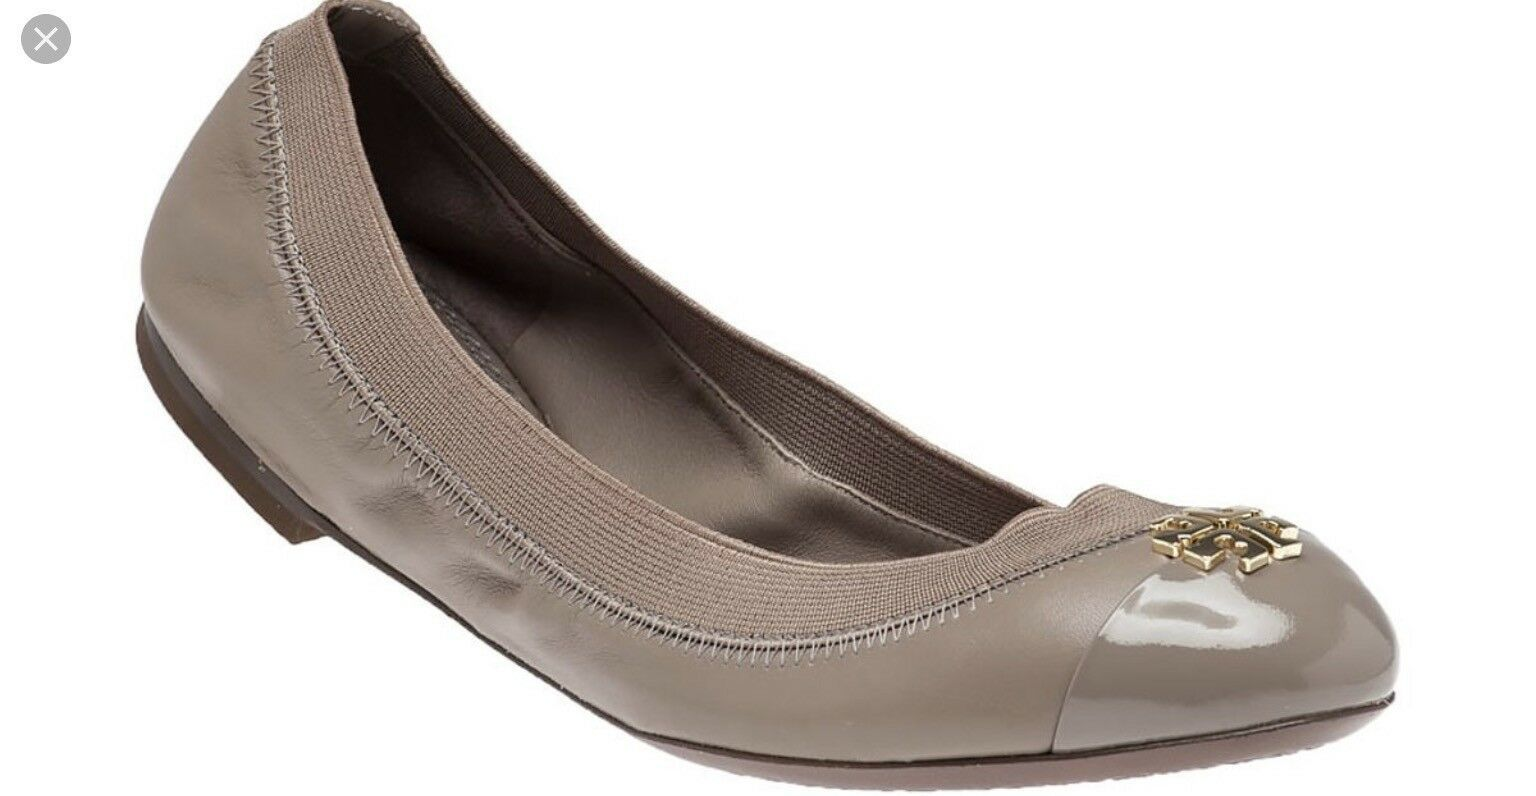 b93892c44 Tory Burch Flat  1 customer review and 196 listings